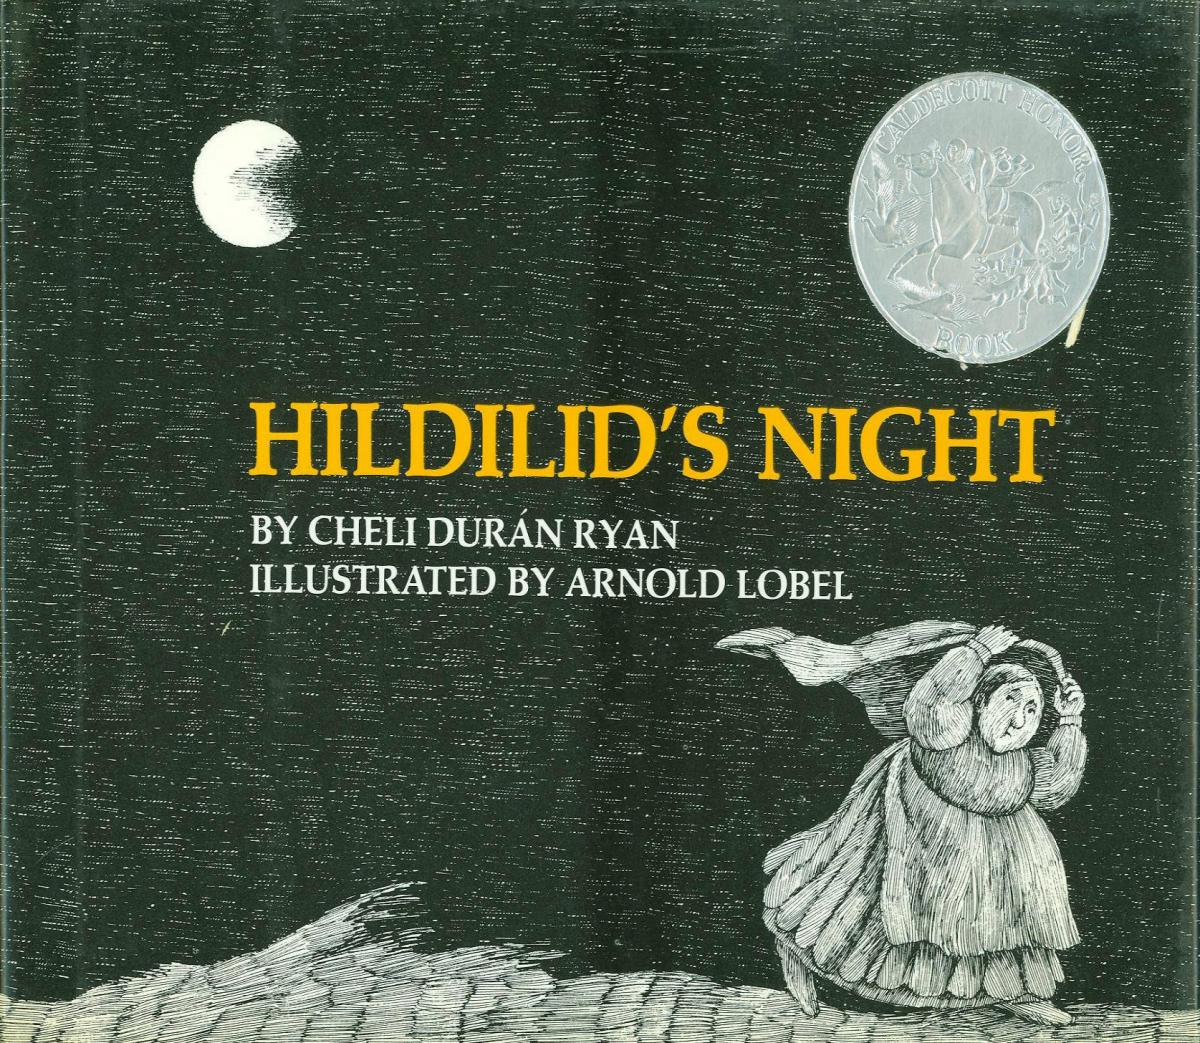 Hildilid's Night - book cover image